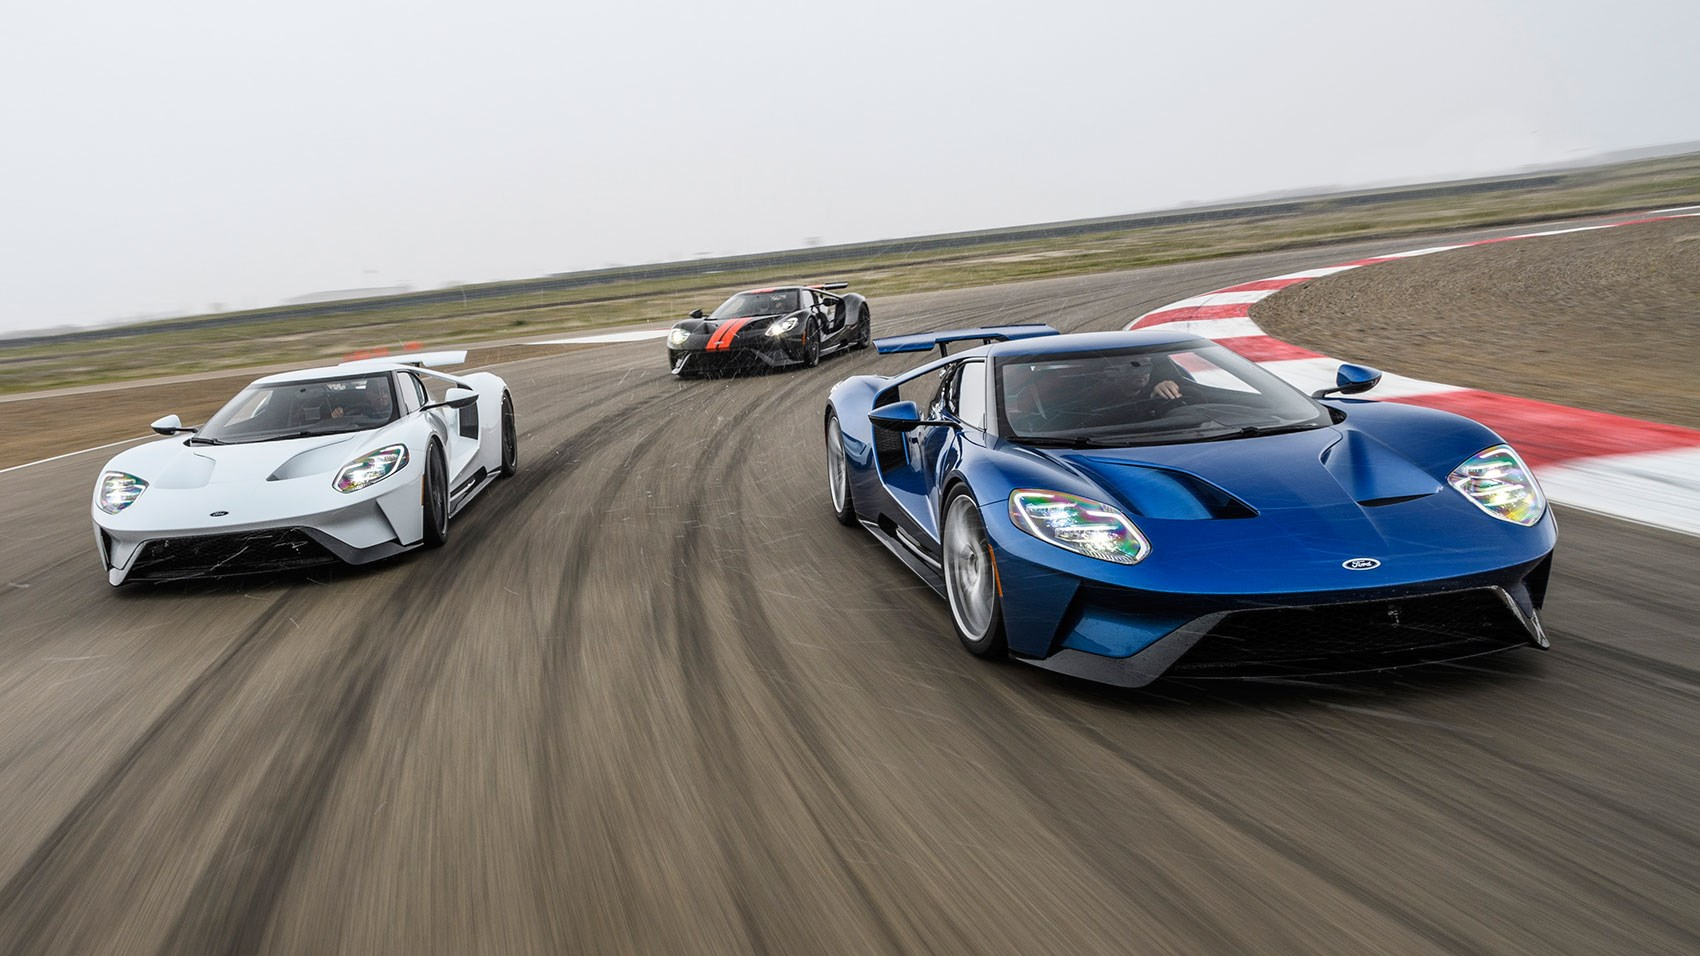 Ford-GT-review-11.jpg